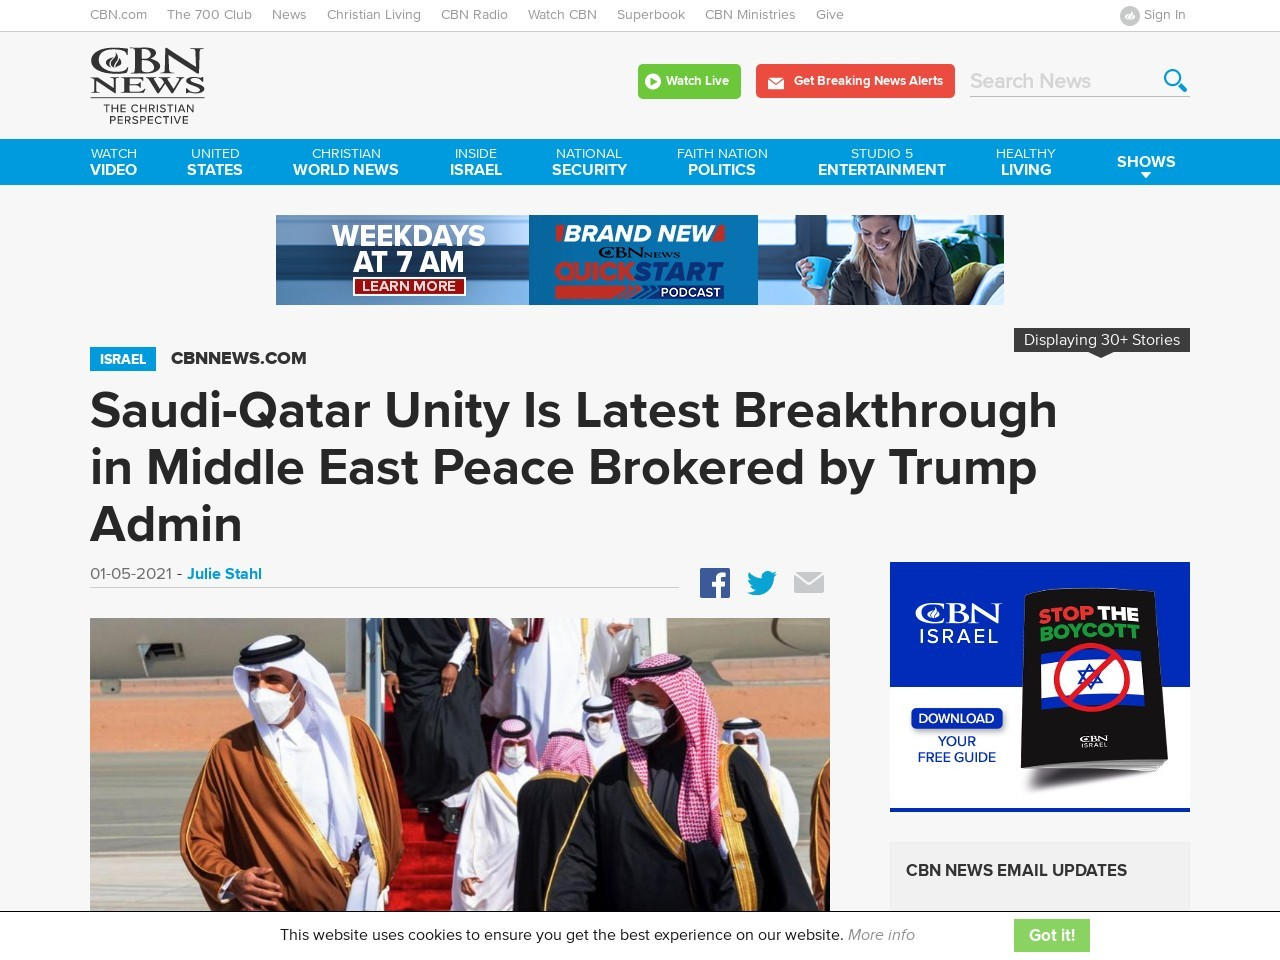 Saudi-Qatar Unity Is Latest Breakthrough in Middle East Peace Brokered by Trump Admin